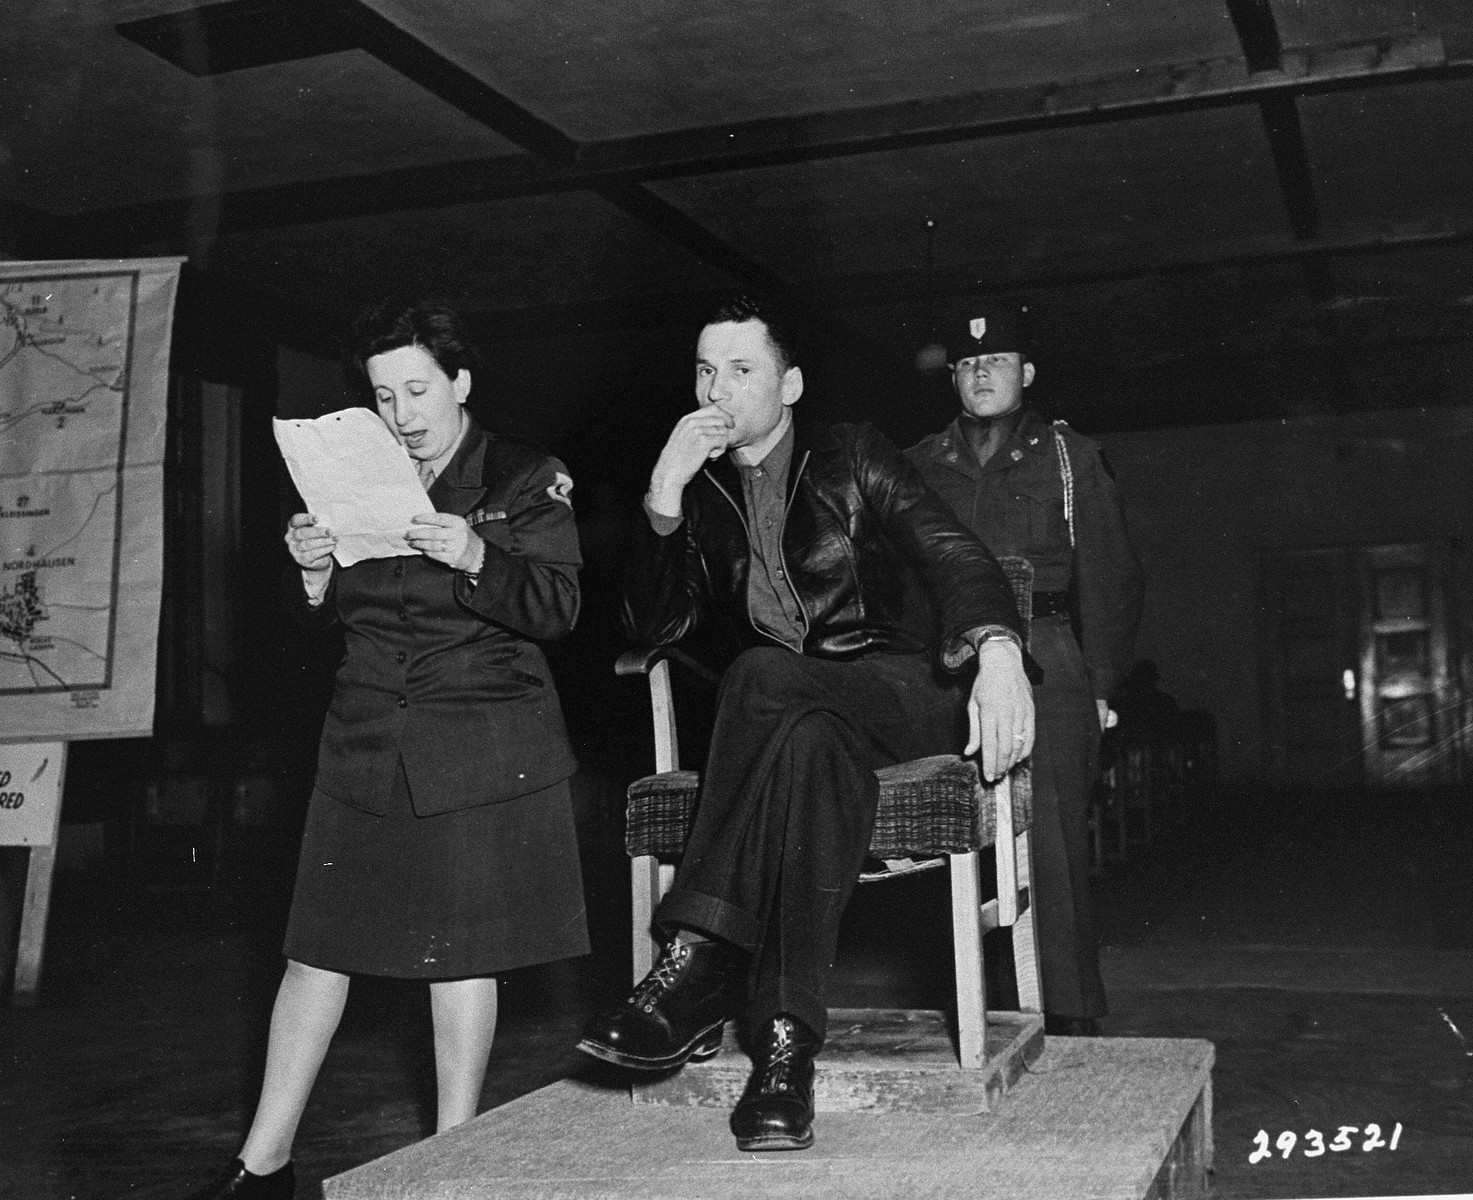 Willi Zwiener, a kapo who turned against his fellow defendants, testifies through an interpreter at the trial of former camp personnel and prisoners from Dora-Mittelbau.  To his left the interpreter, Nelly Singer, reads Zwiener's written statement, while behind him stands his guard, Pfc. Ernest Westerrode.